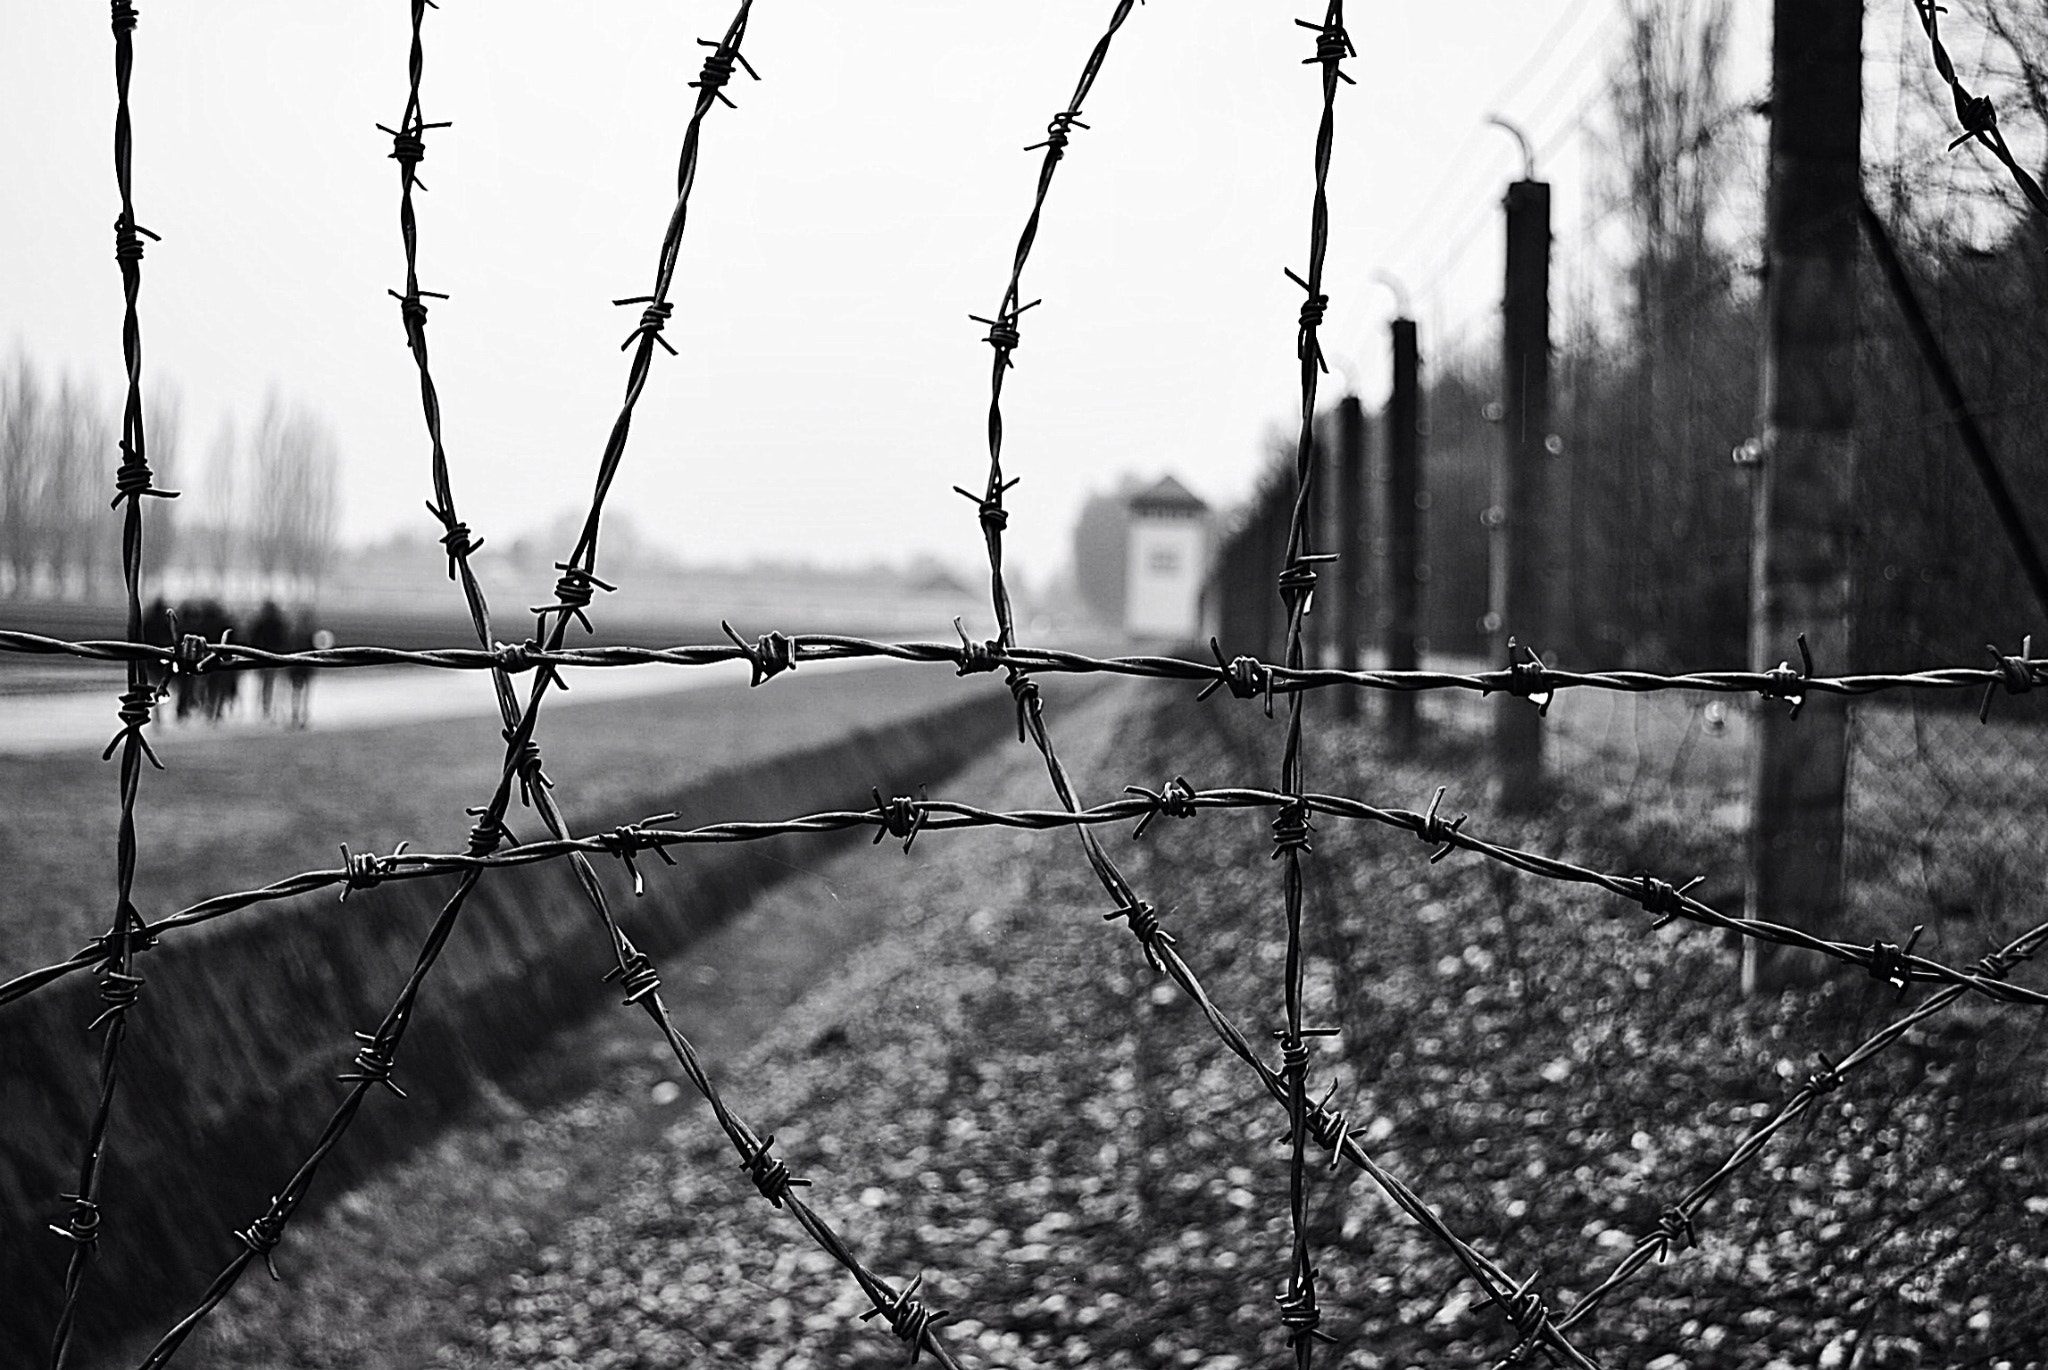 Photograph Sadness behind the wire by Glen Manby on 500px